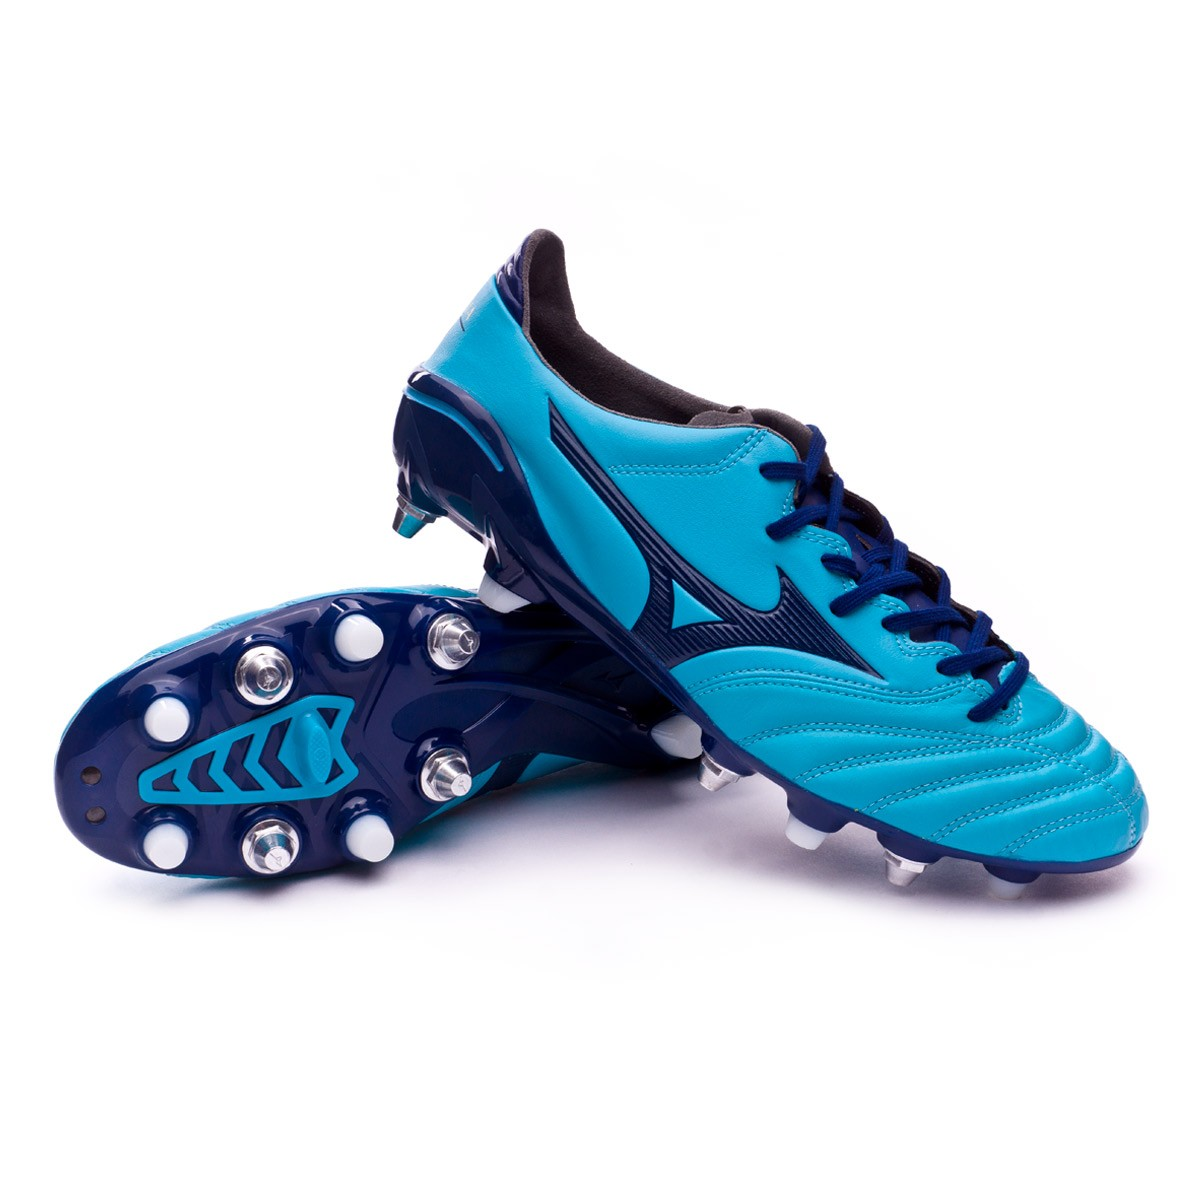 1a7d76a257 Boot Mizuno Morelia NEO II MIX Blue Atomic-Blue depth - Football ...